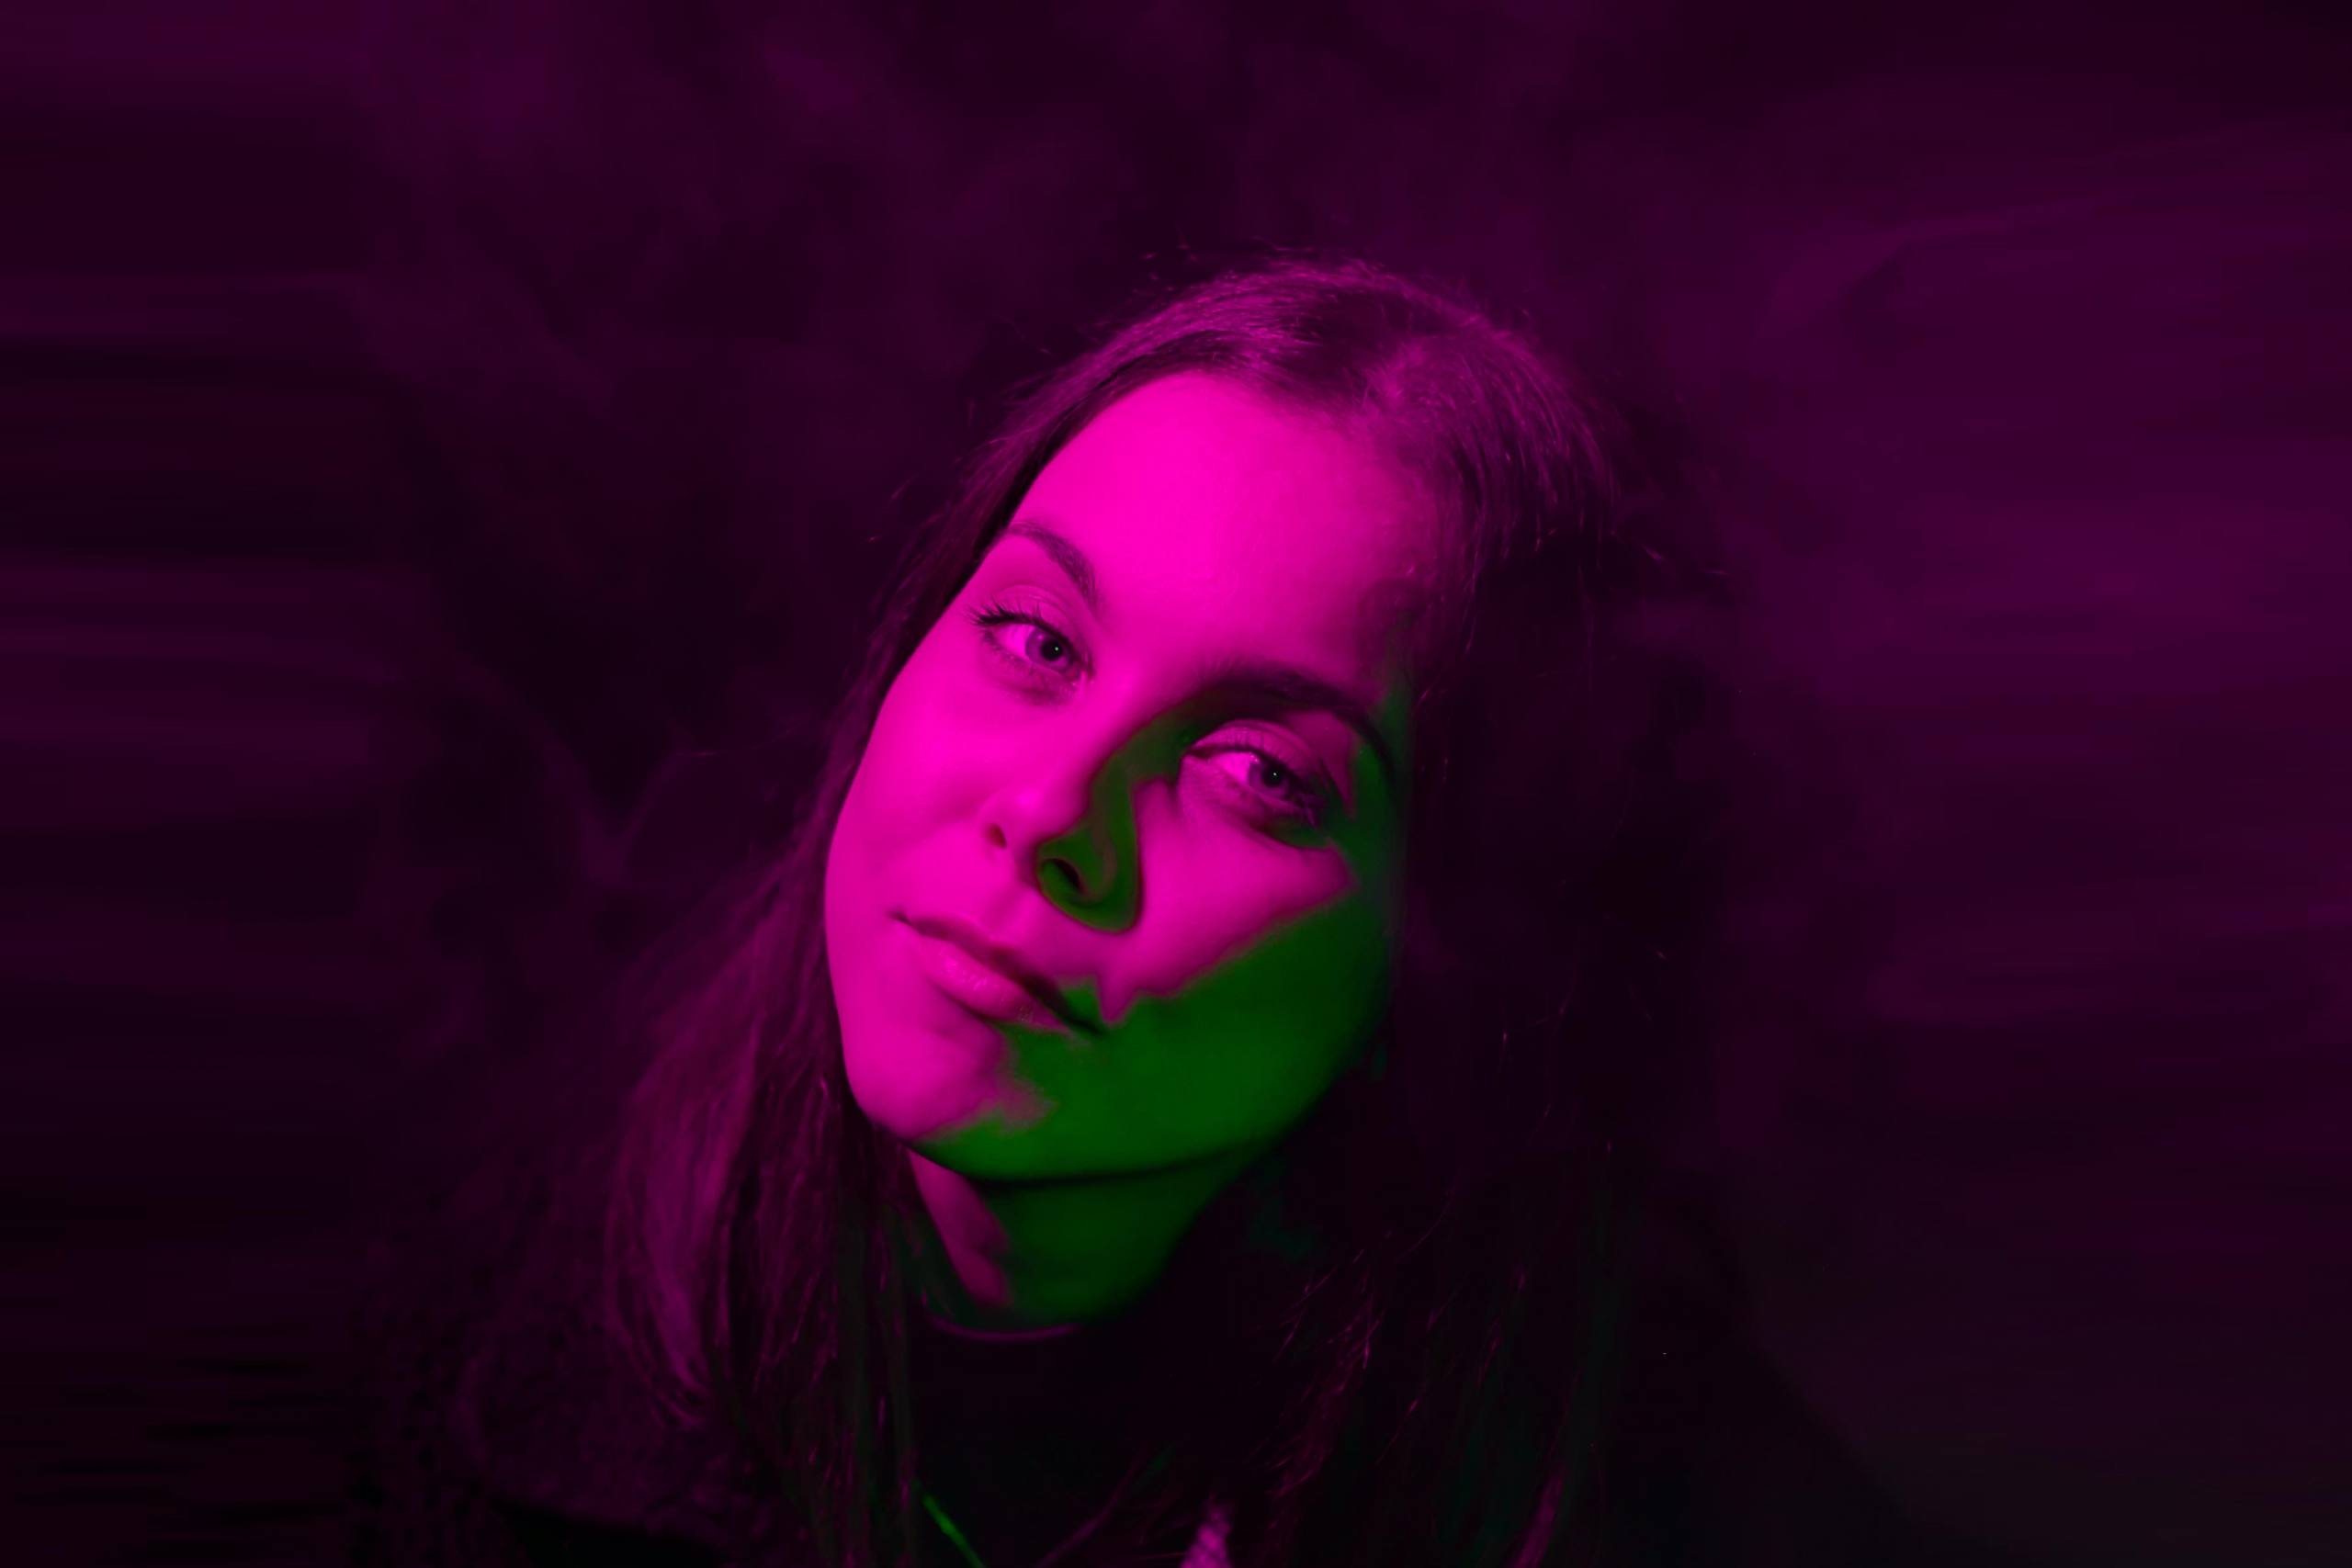 Headshot of an artist with their head slightly tilted looking at camera. Dark purple cloudy background with pink and green lights shining on the artist's face.